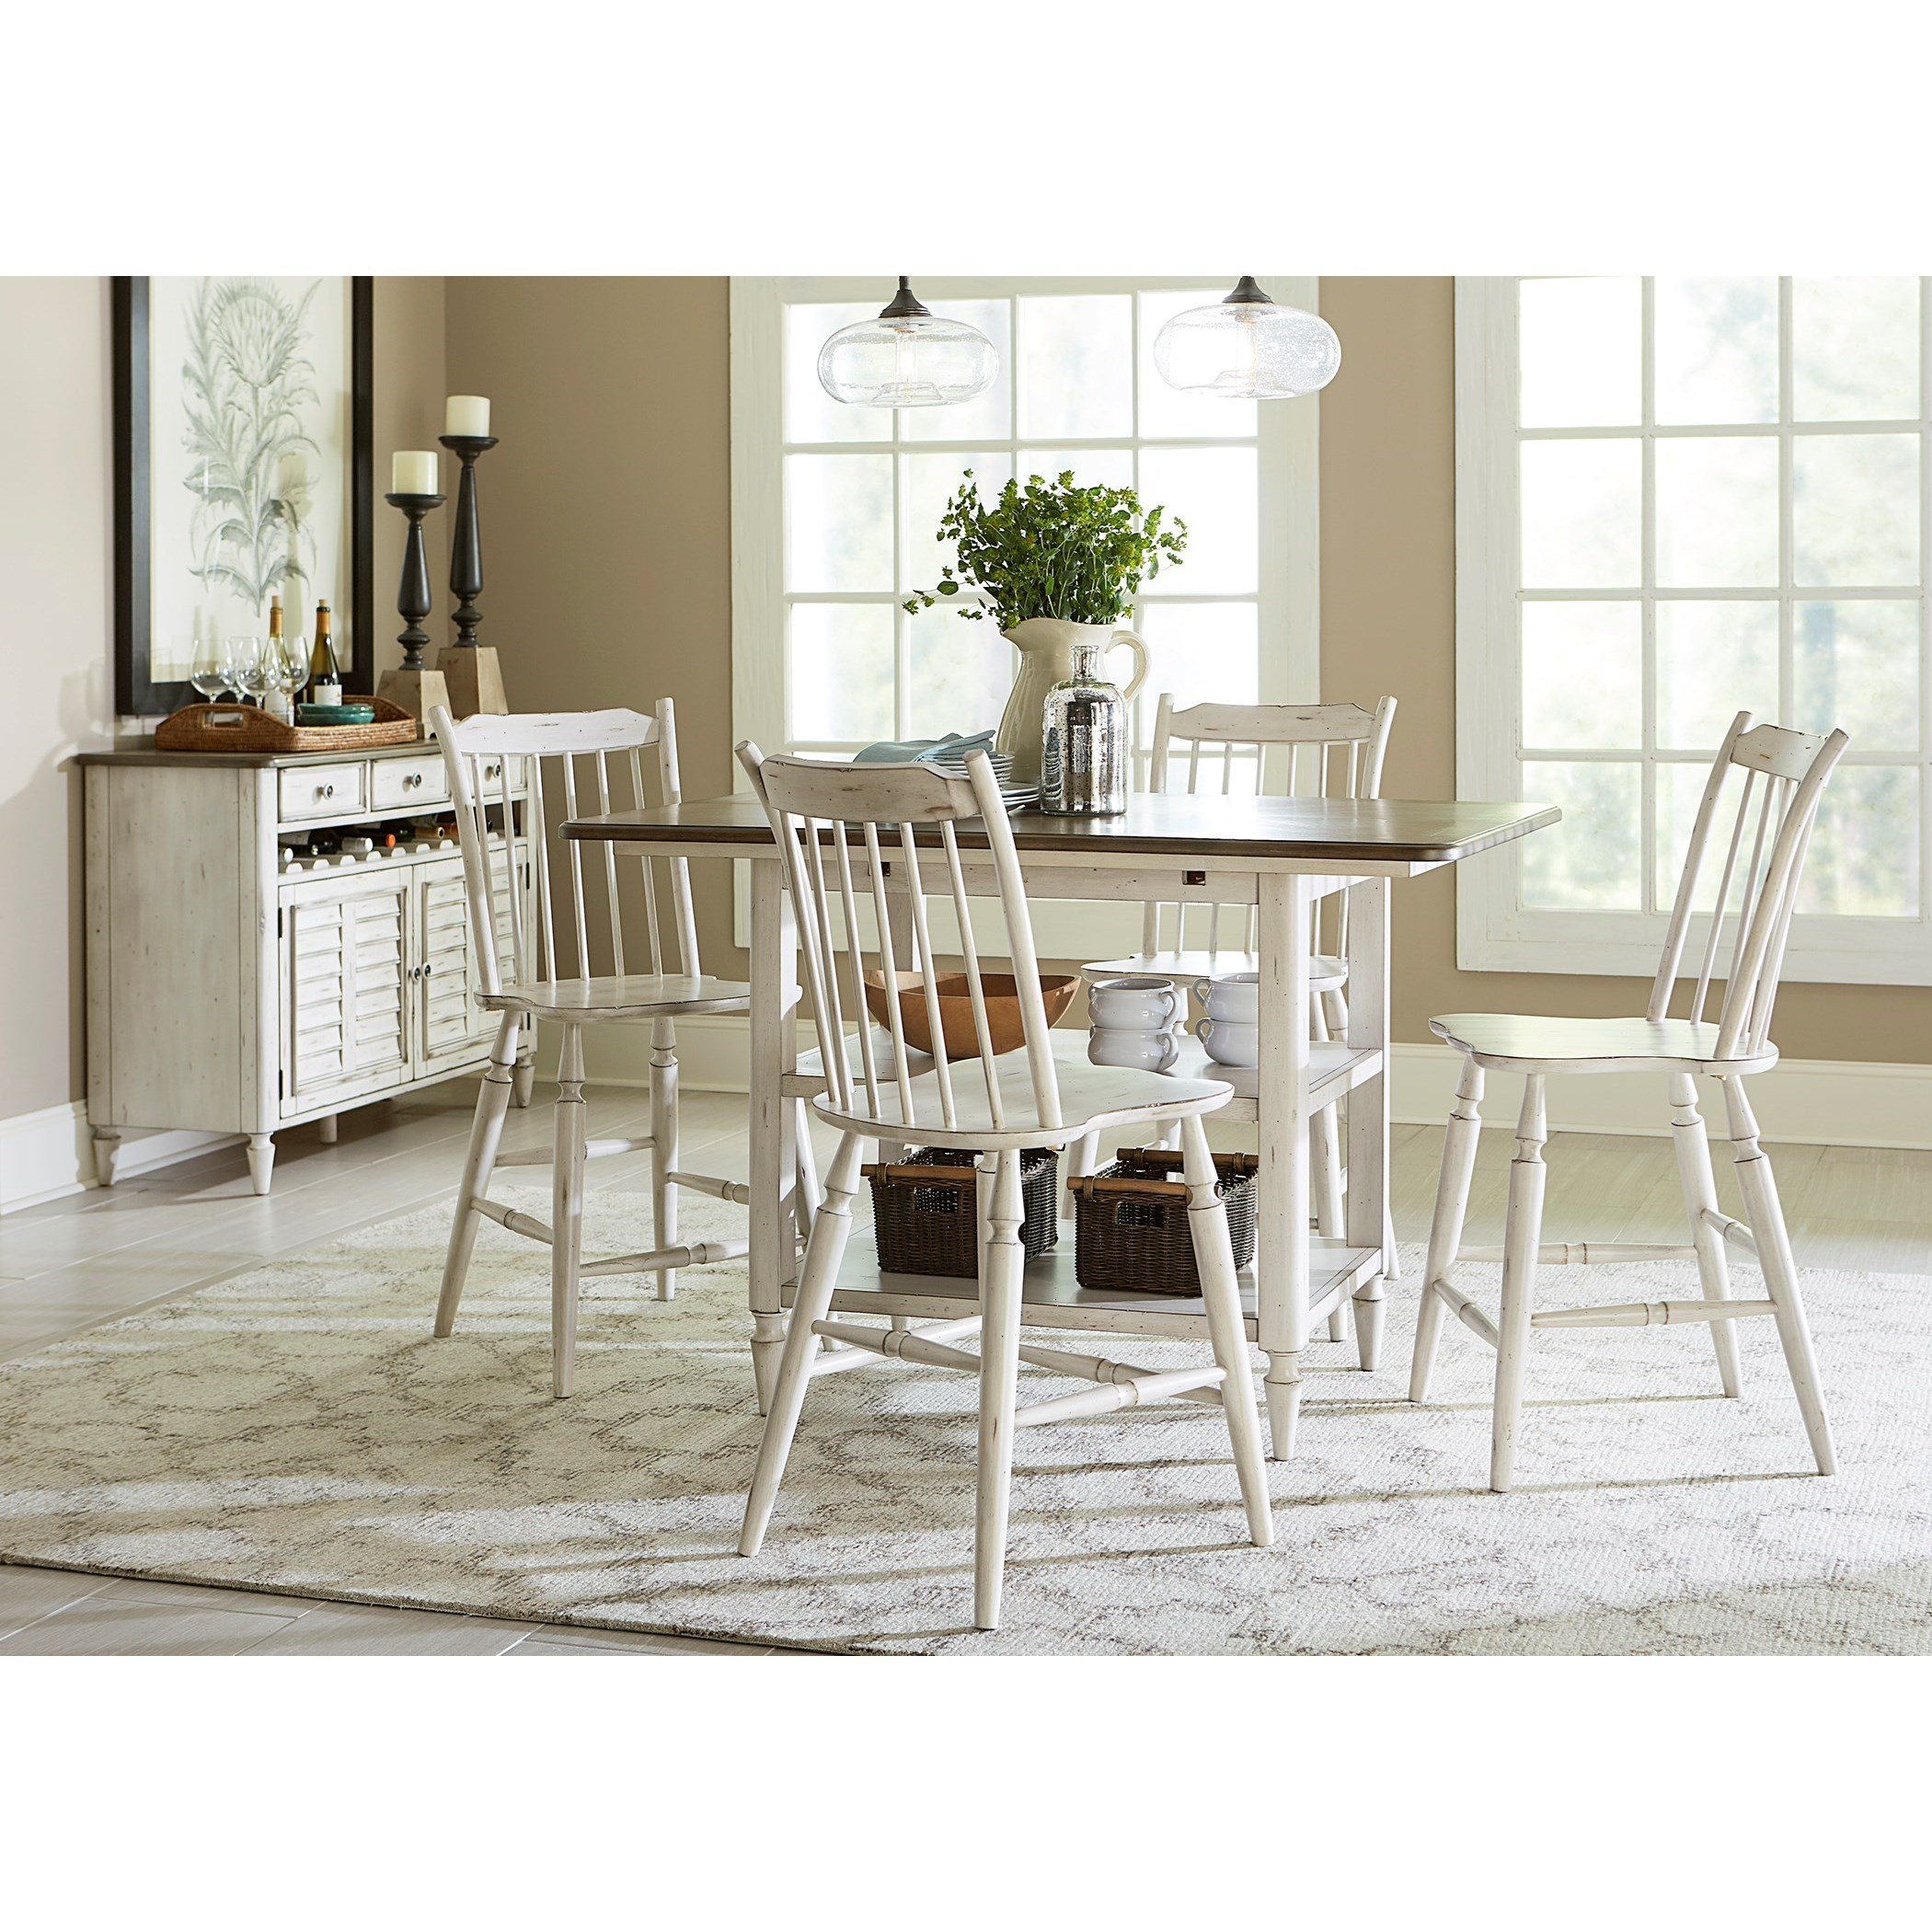 Attractive Liberty Furniture Oak Hill Dining Dining Server With Bottle Storage